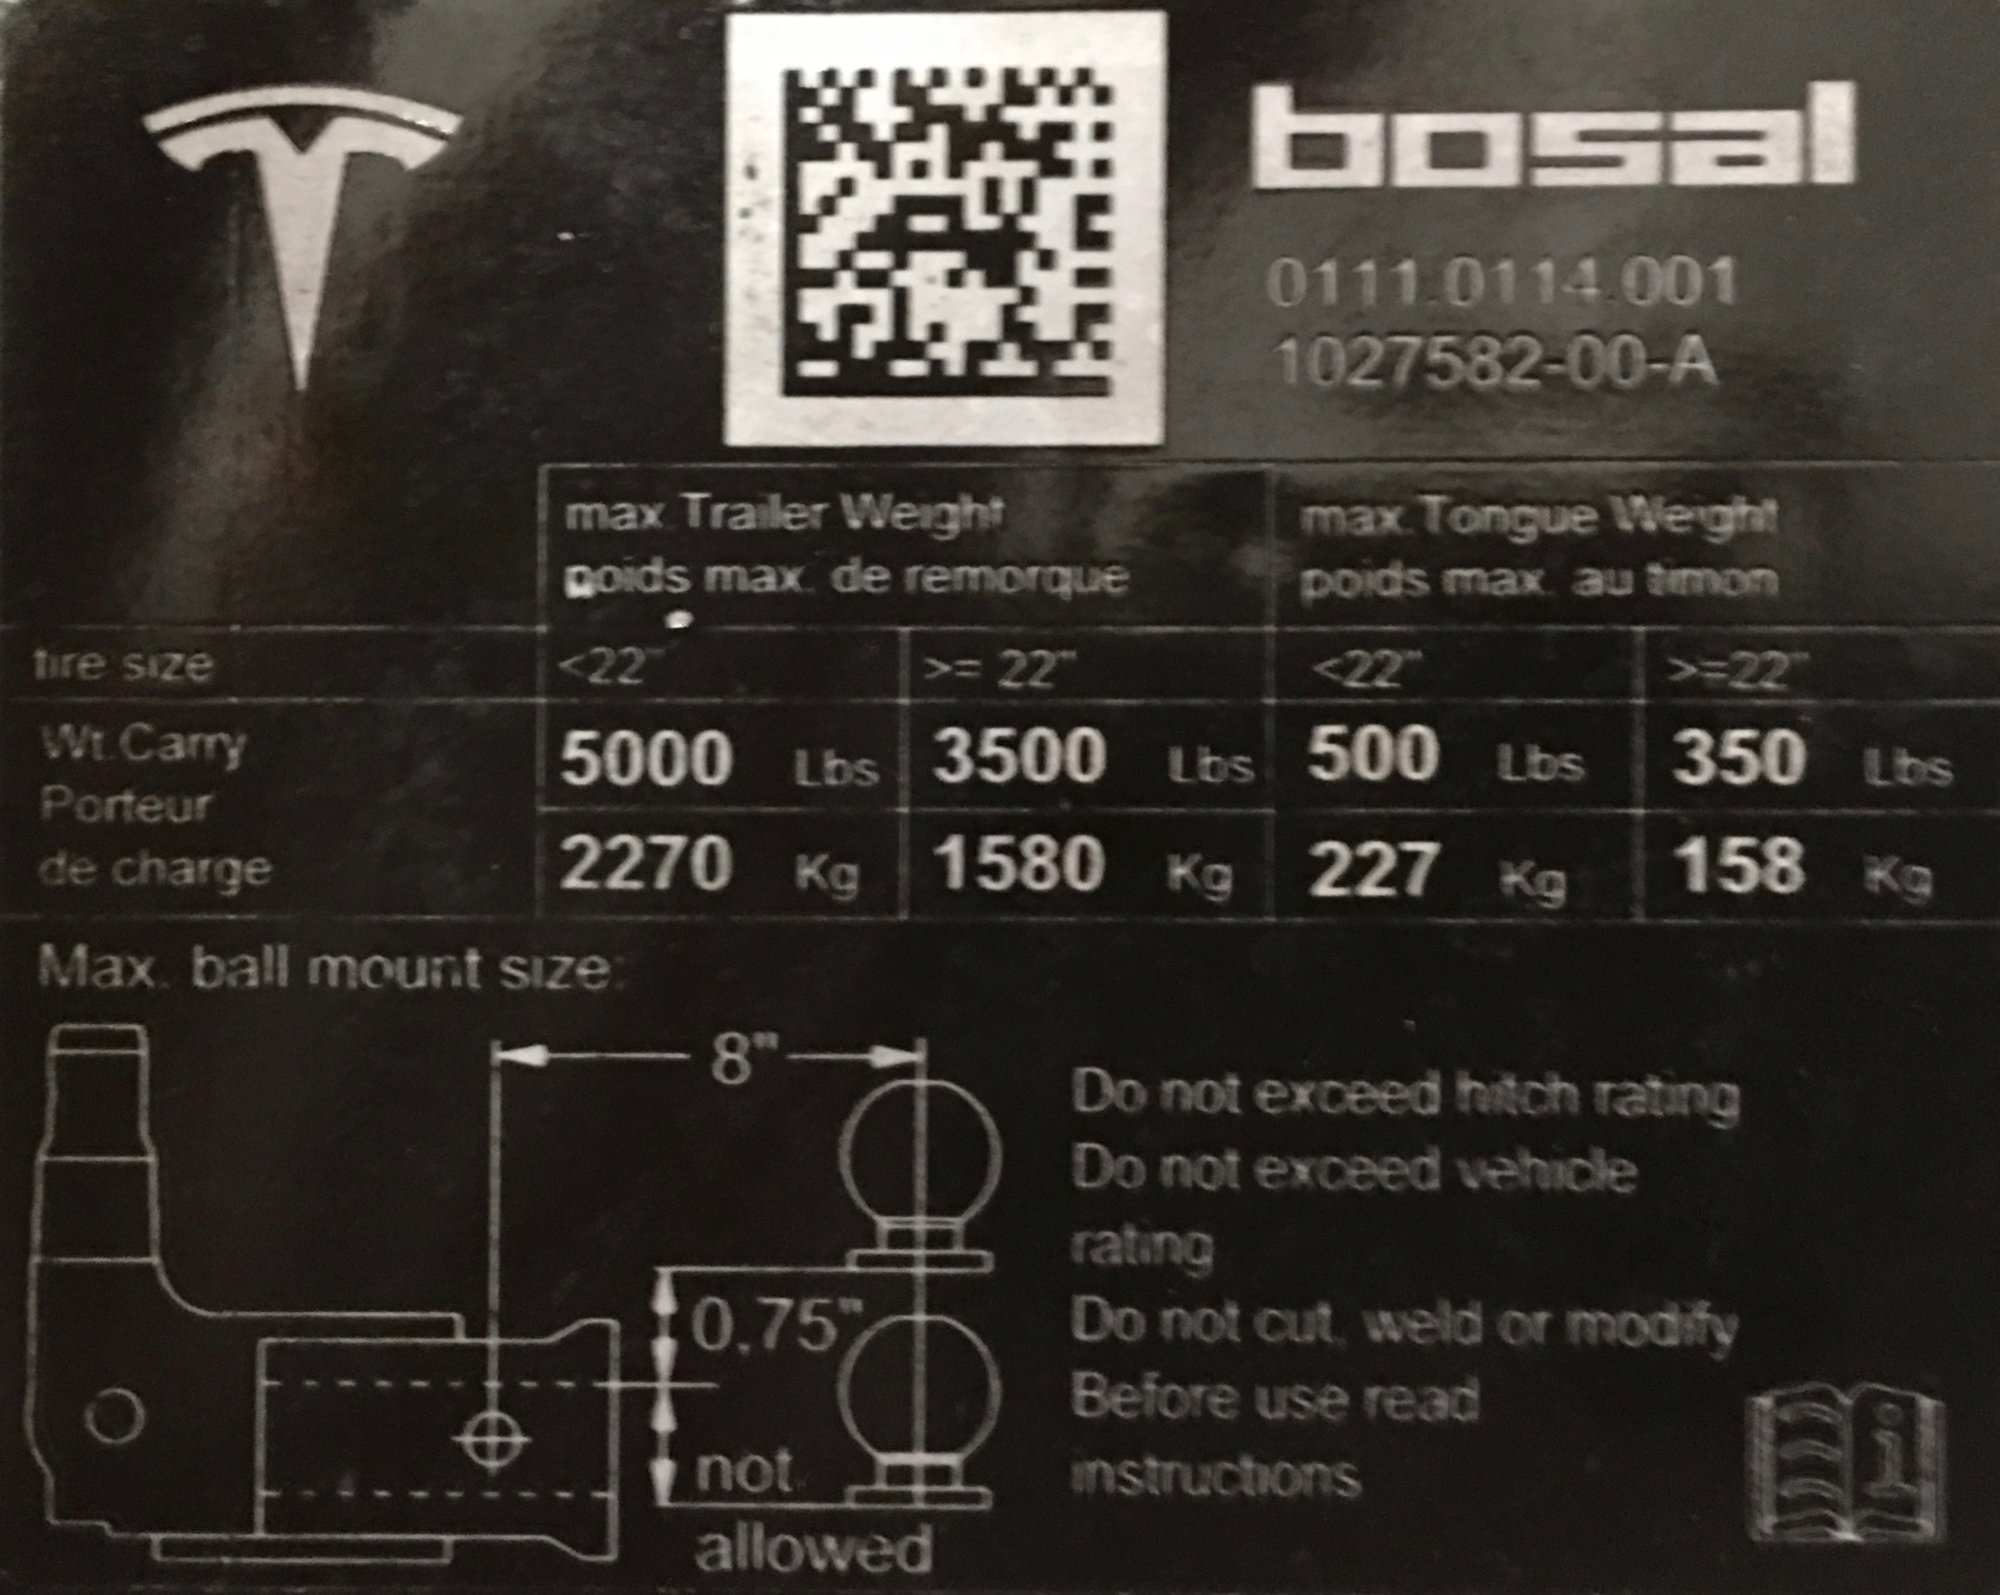 Tesla Model X Bosal Hitch Label.jpg